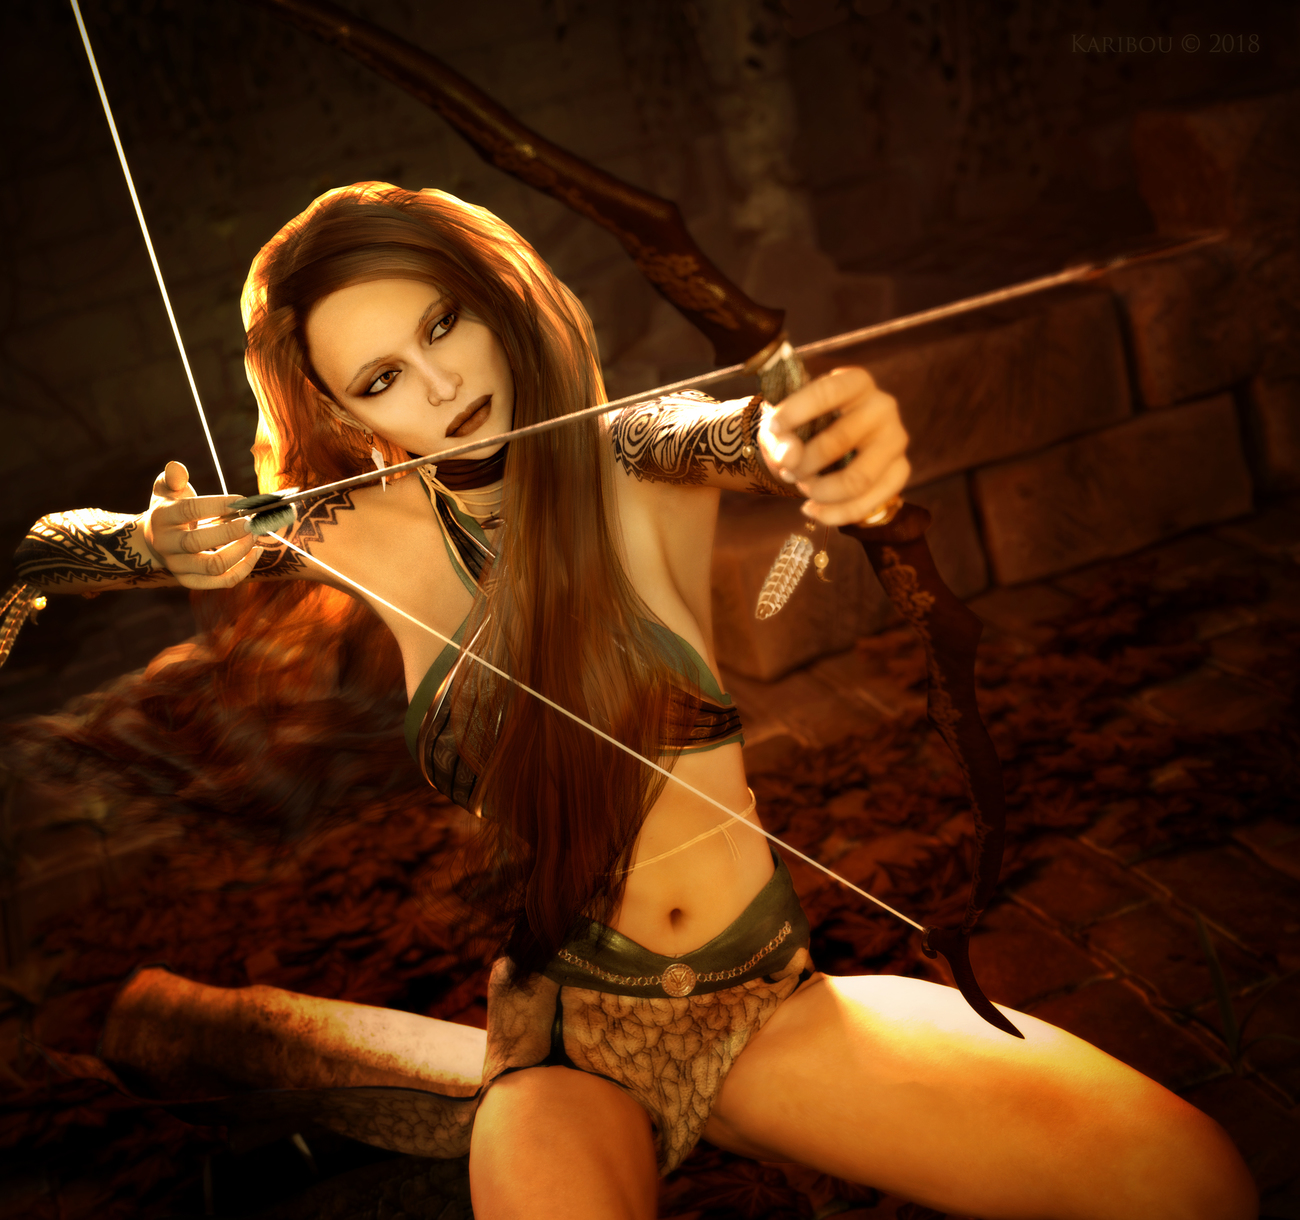 Mistress of The Bow by karibousboutique